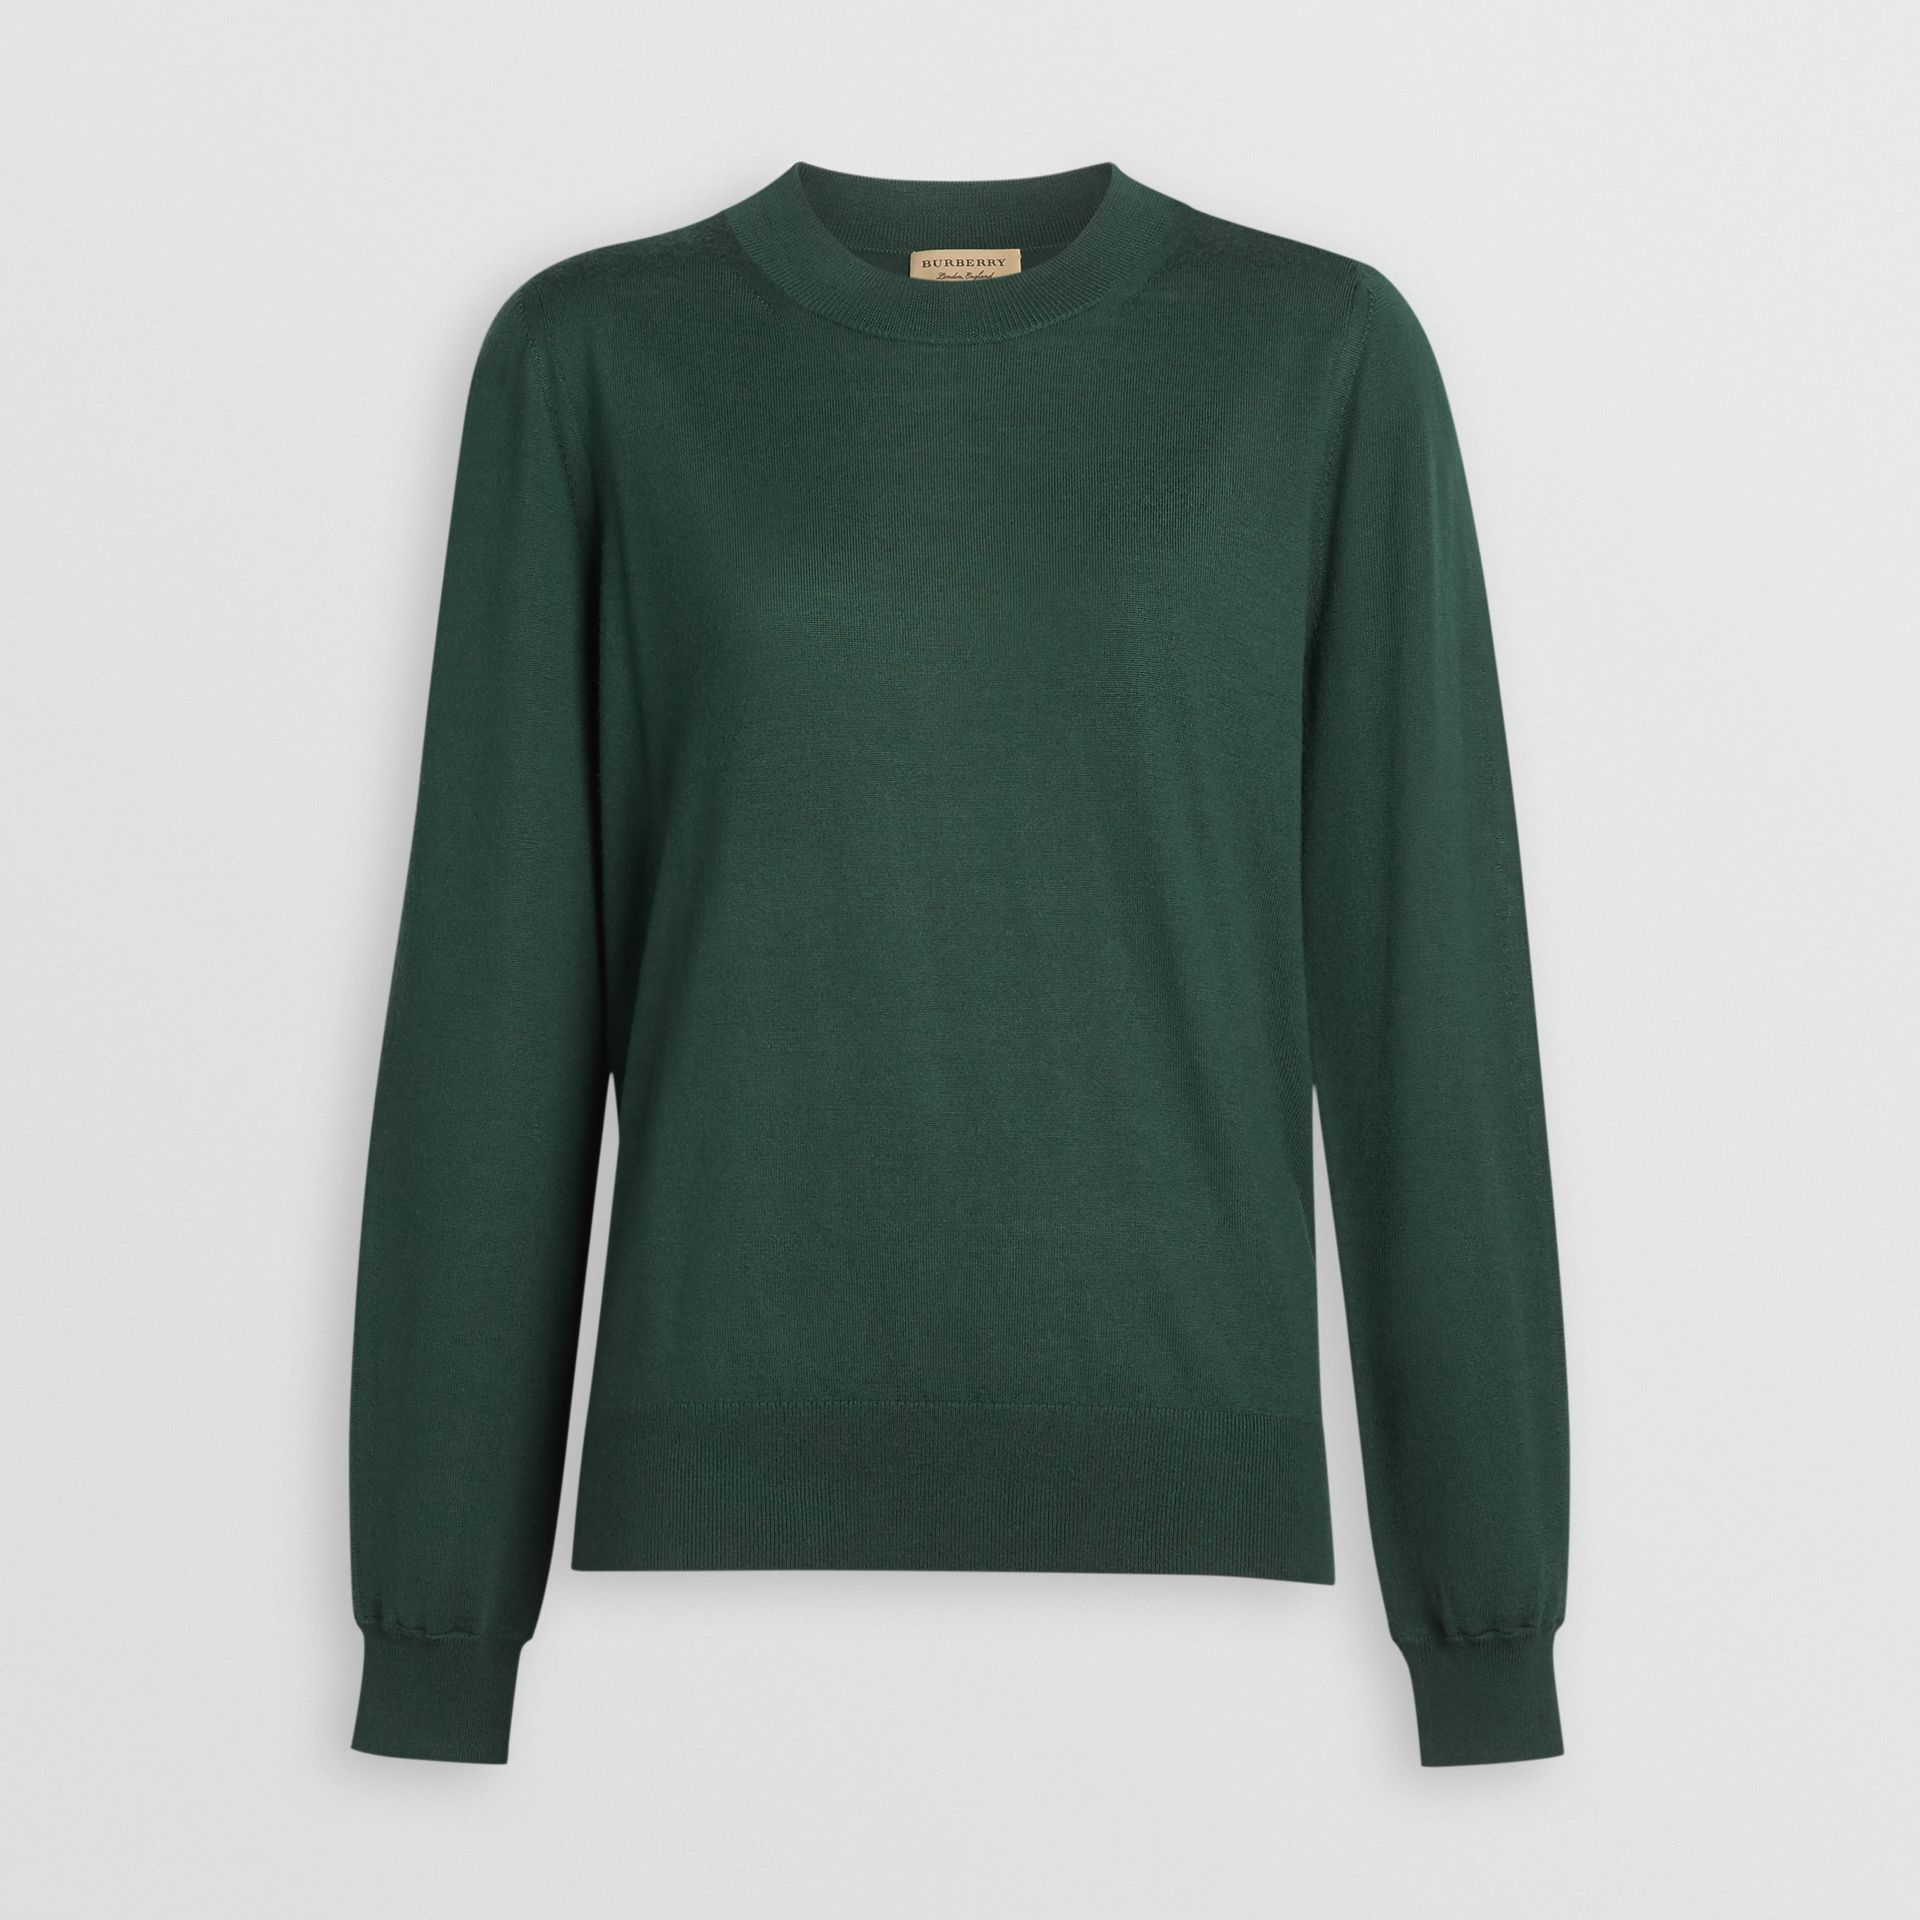 Merino Wool Crew Neck Sweater in Dark Forest Green - Women | Burberry Singapore - gallery image 3